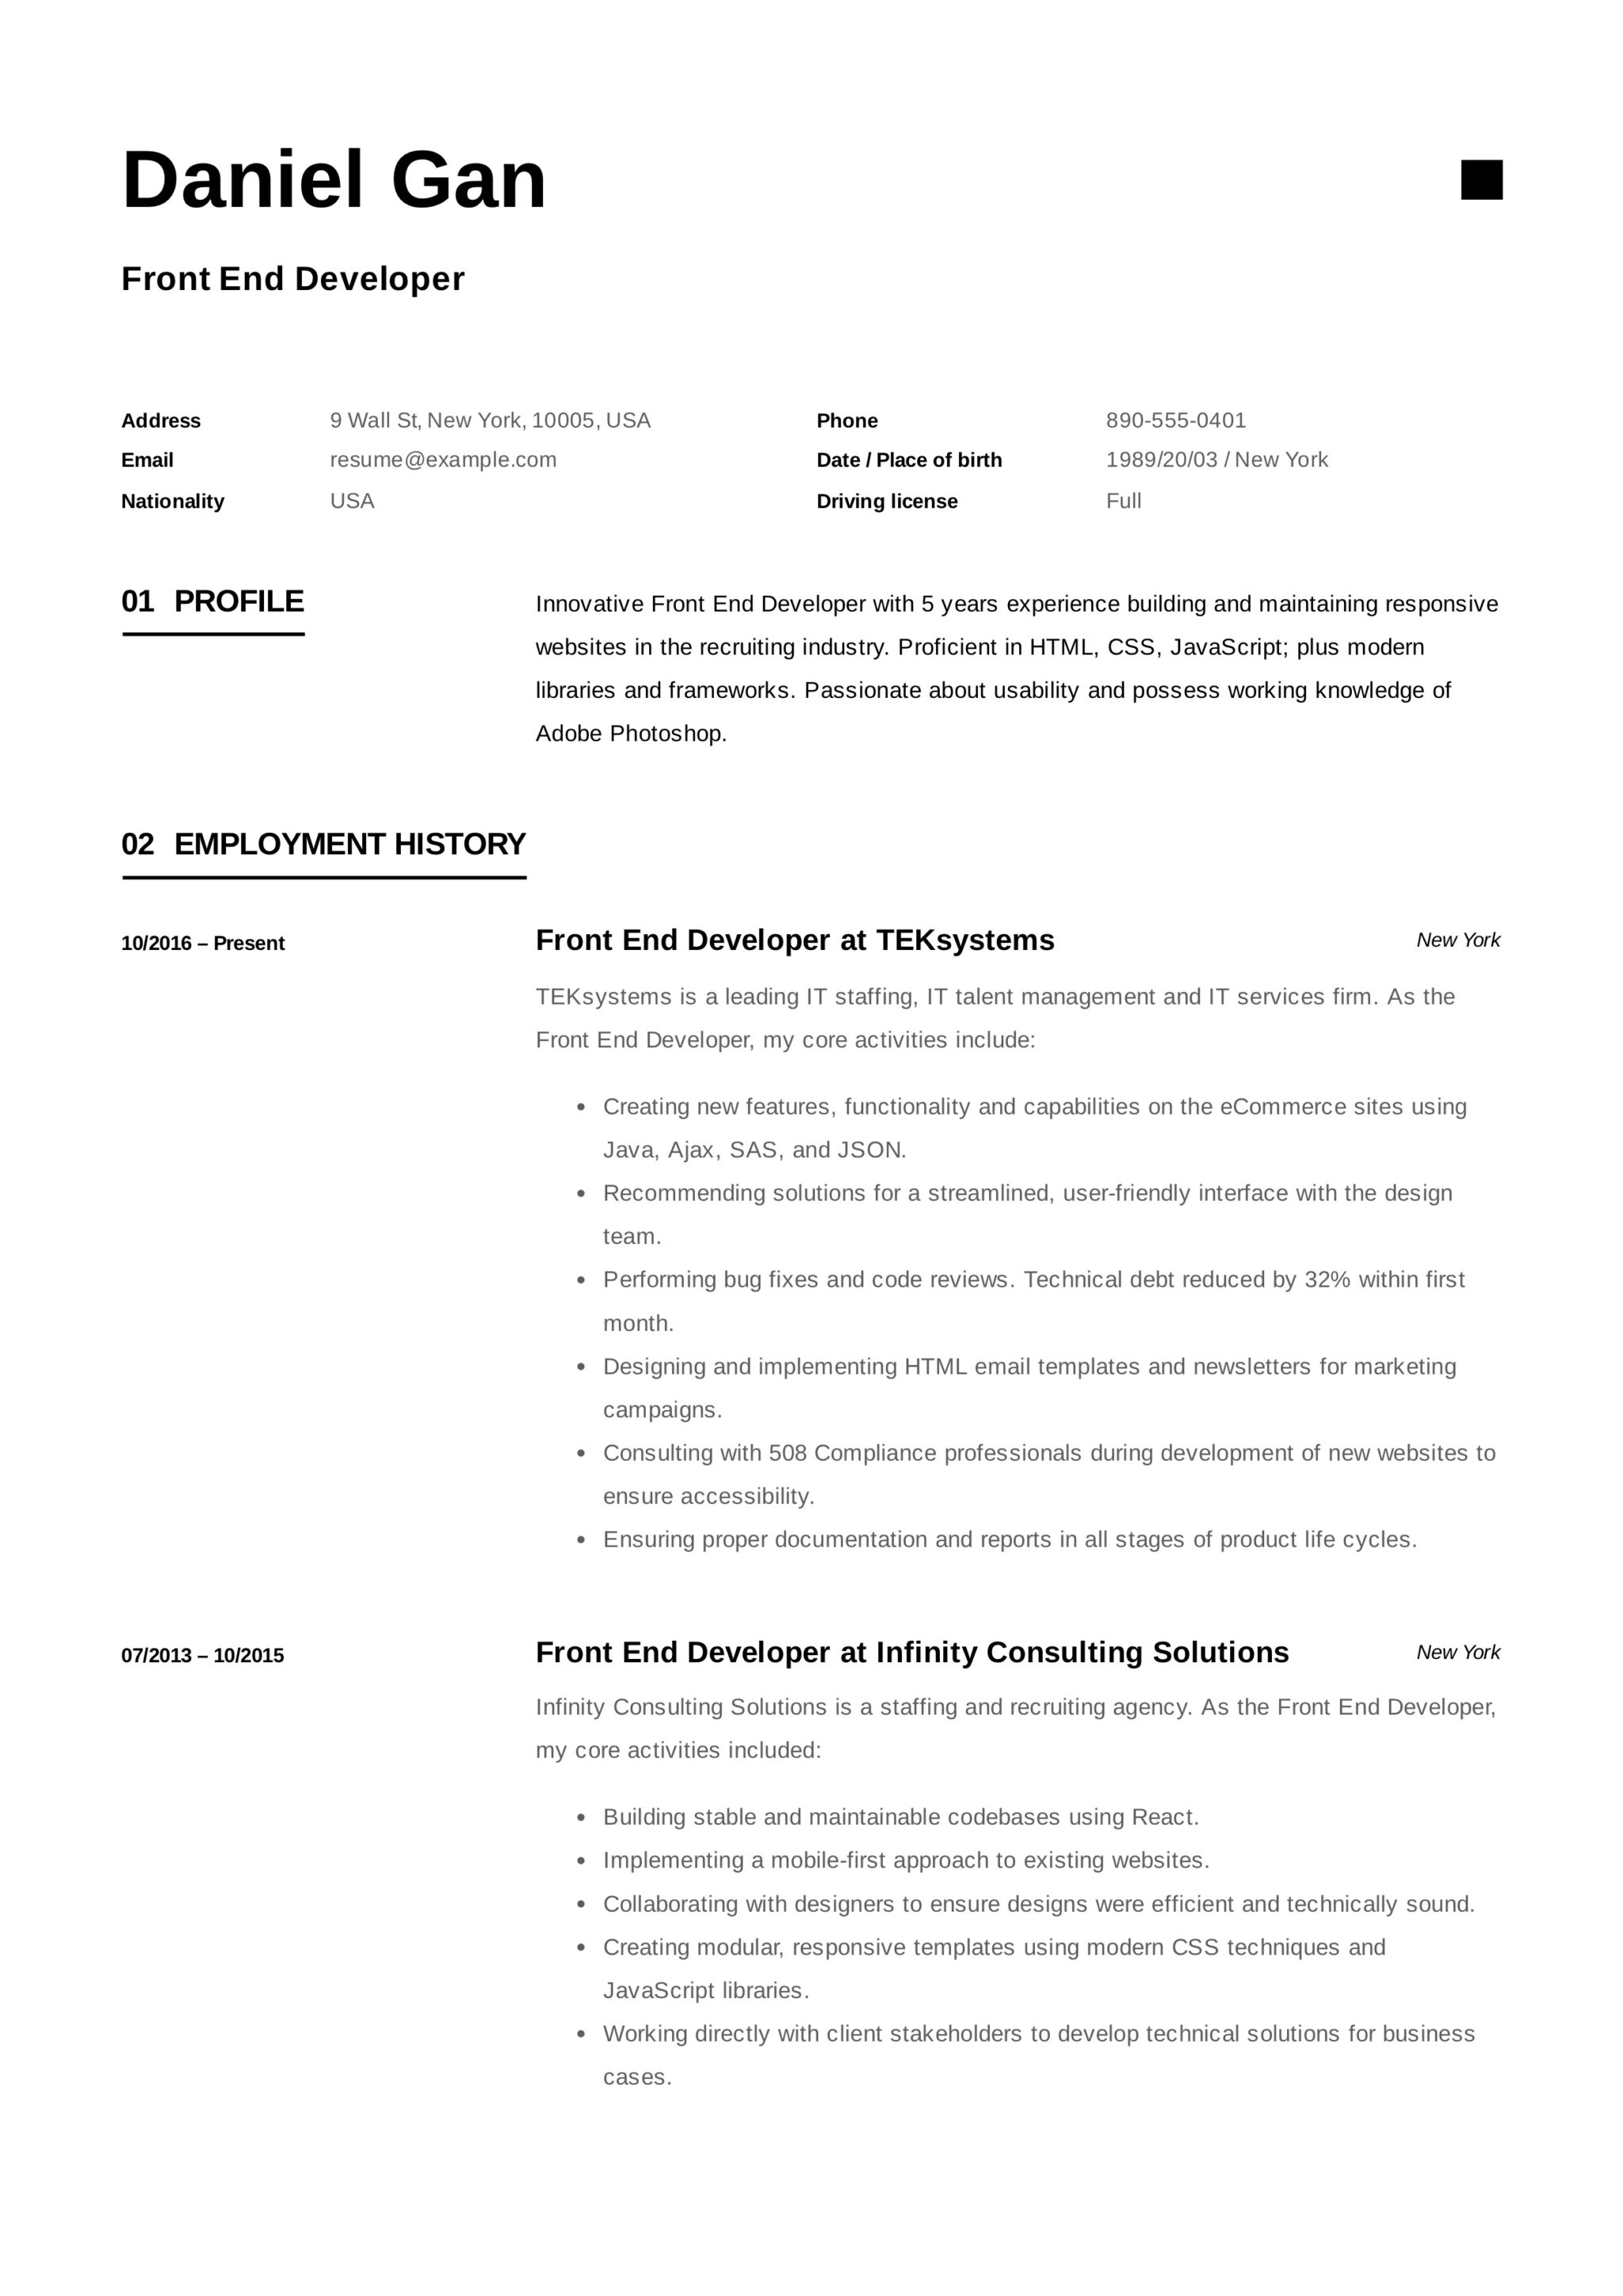 Front End Developer Resume